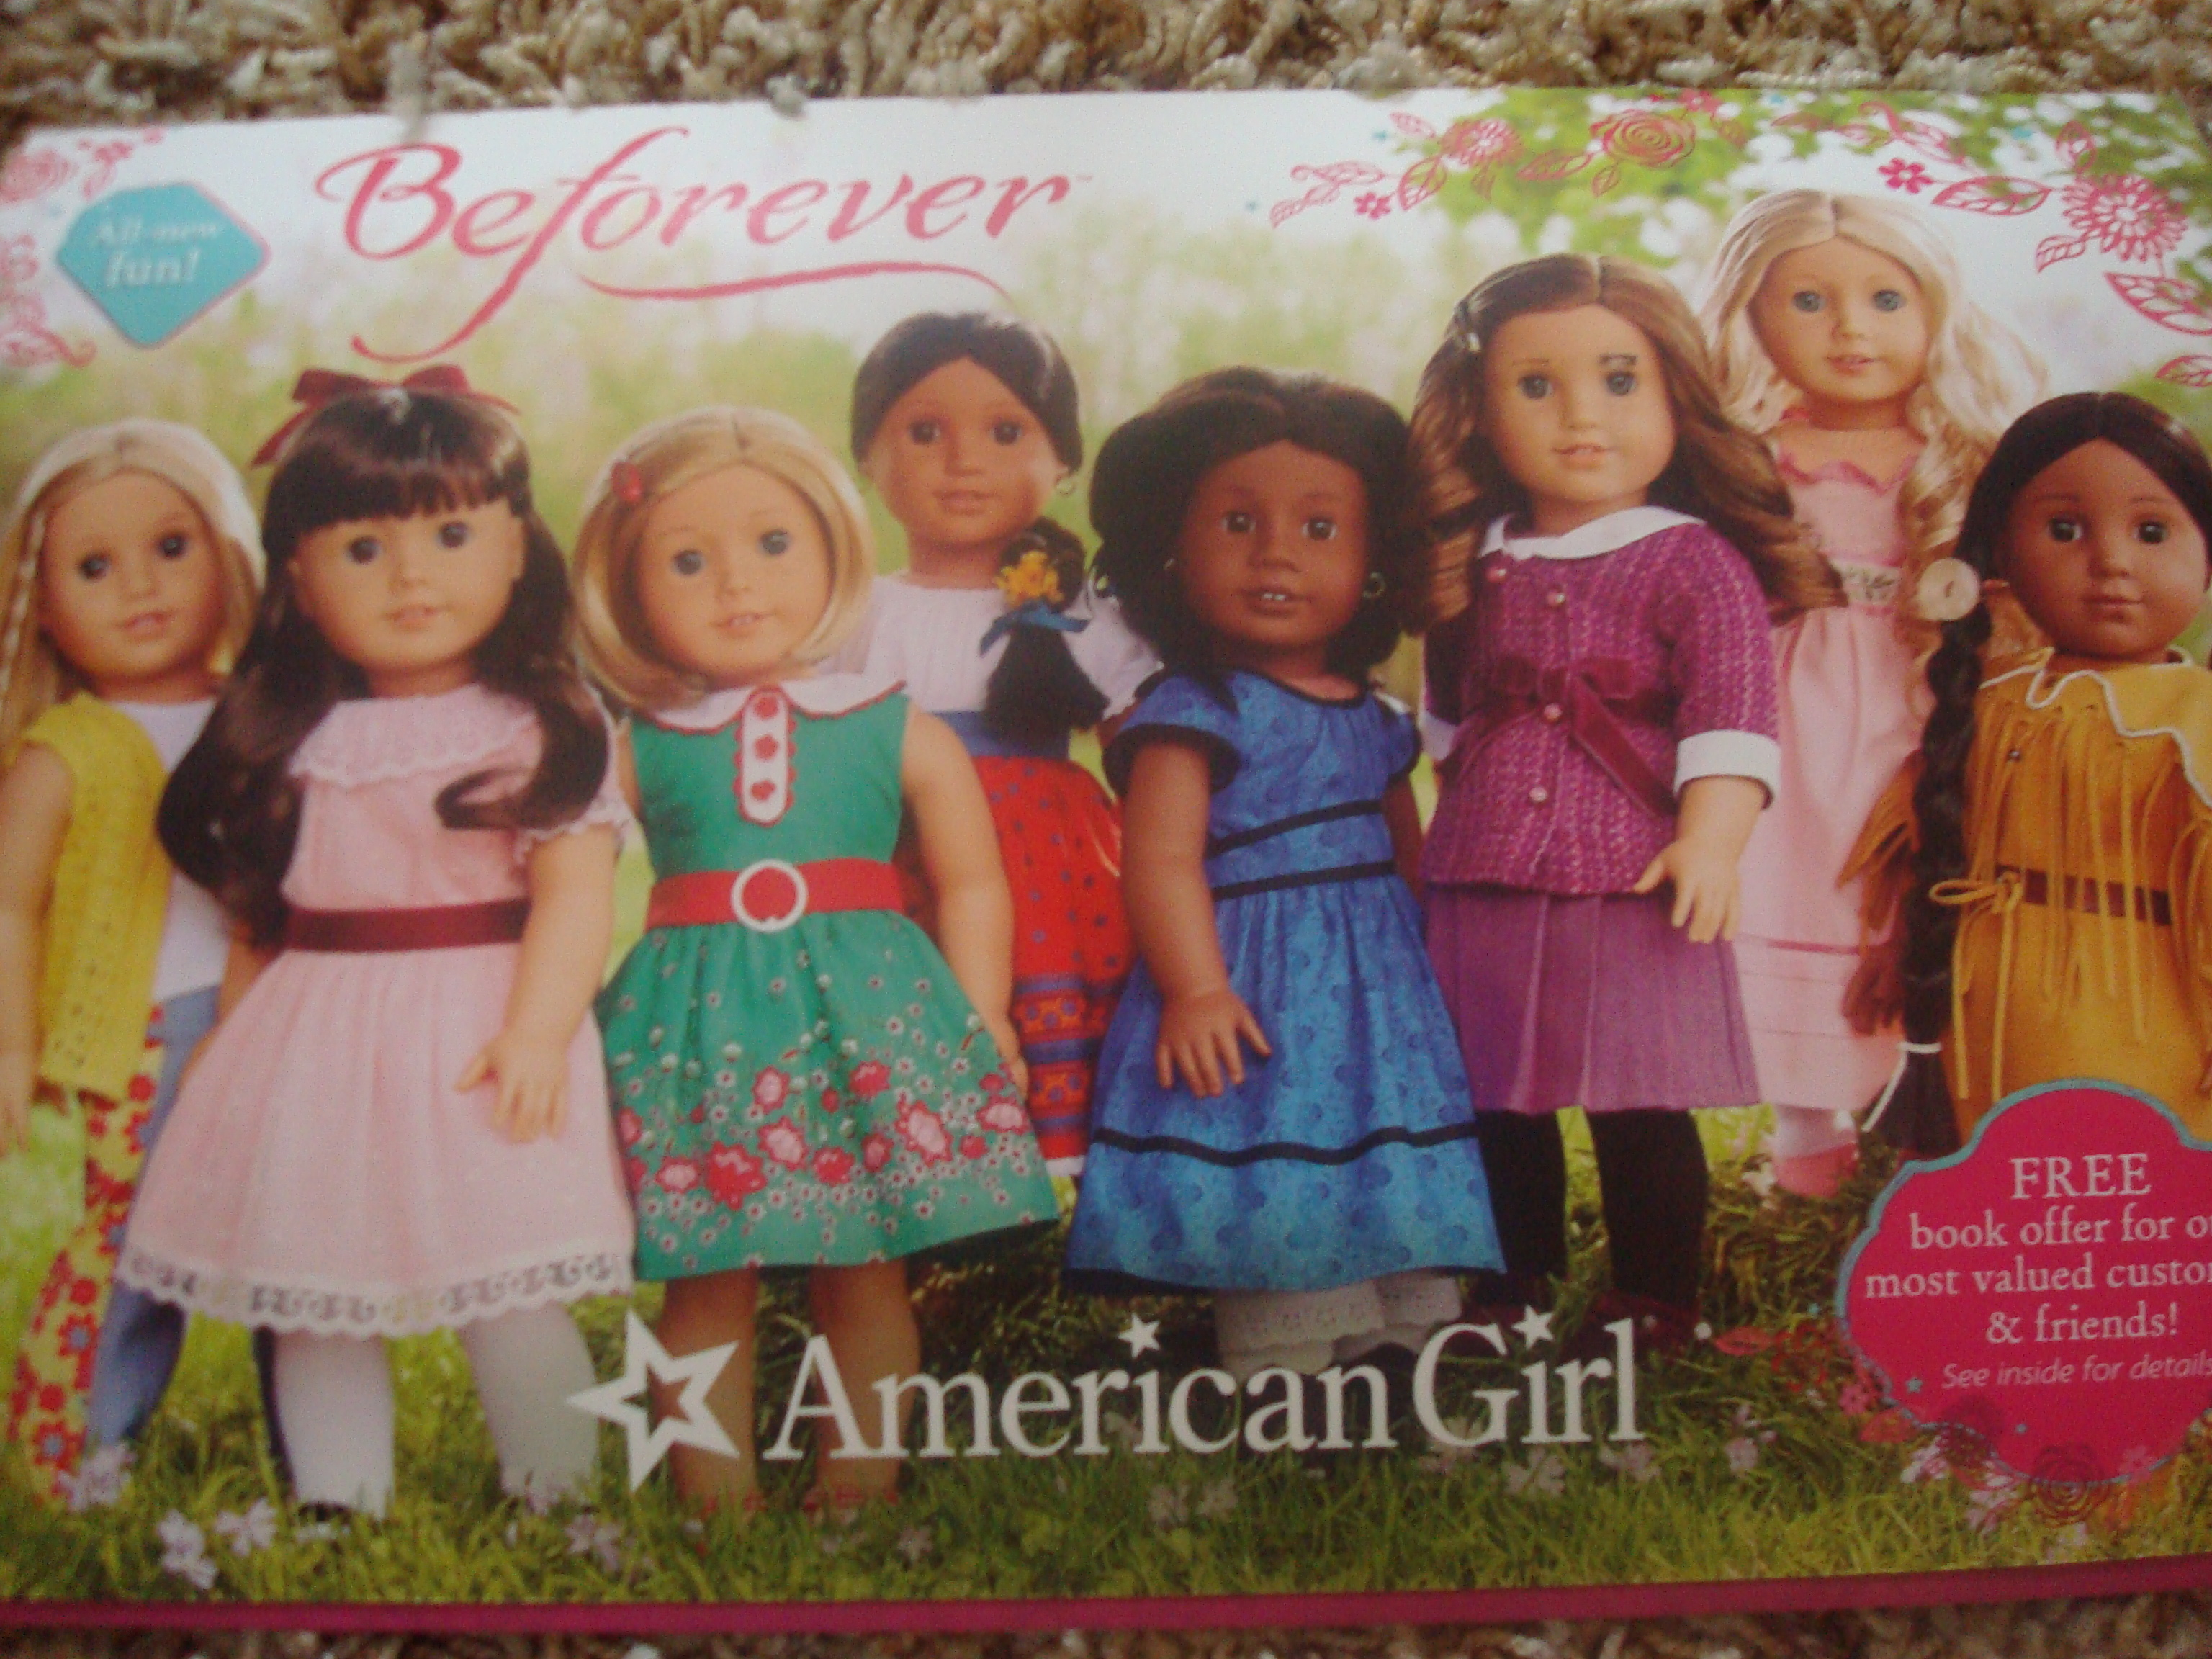 Brand New American Girl Samantha/'s BeForever Meet DRESS ONLY Outfit So So Pretty